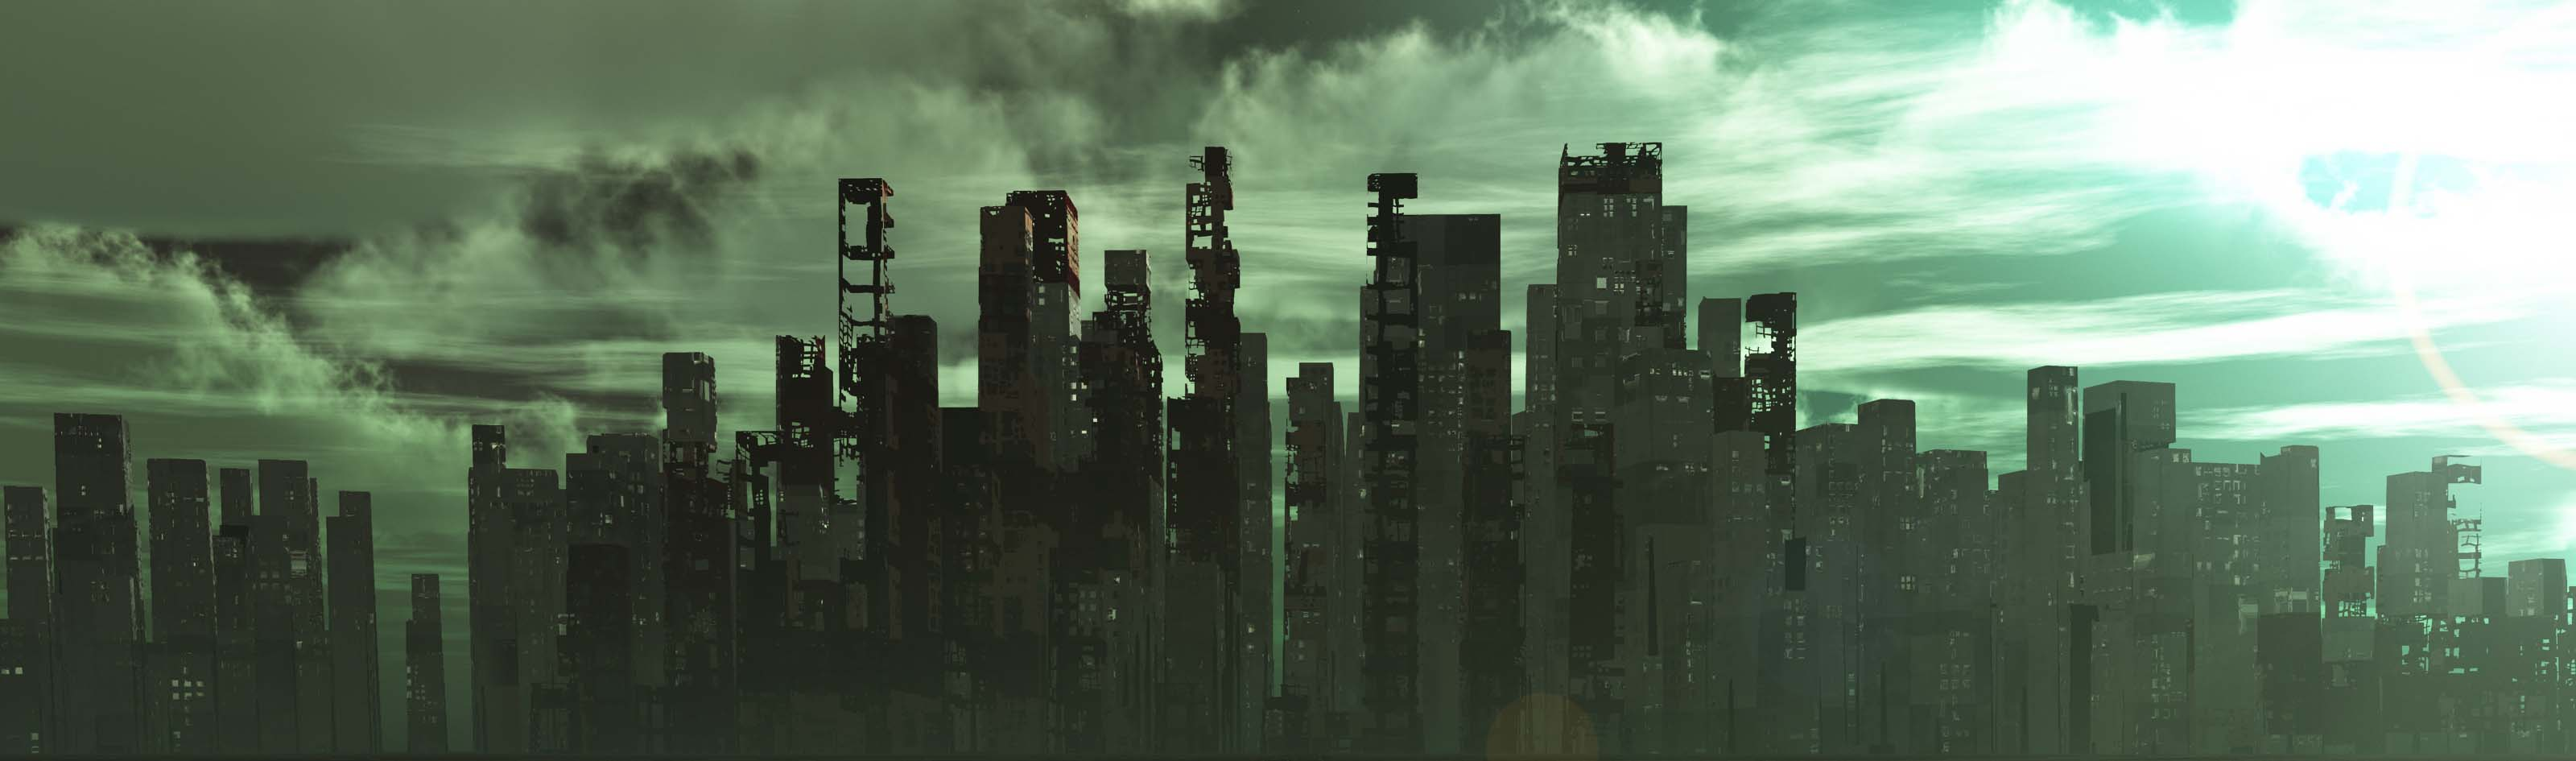 post apocalypse city landscape